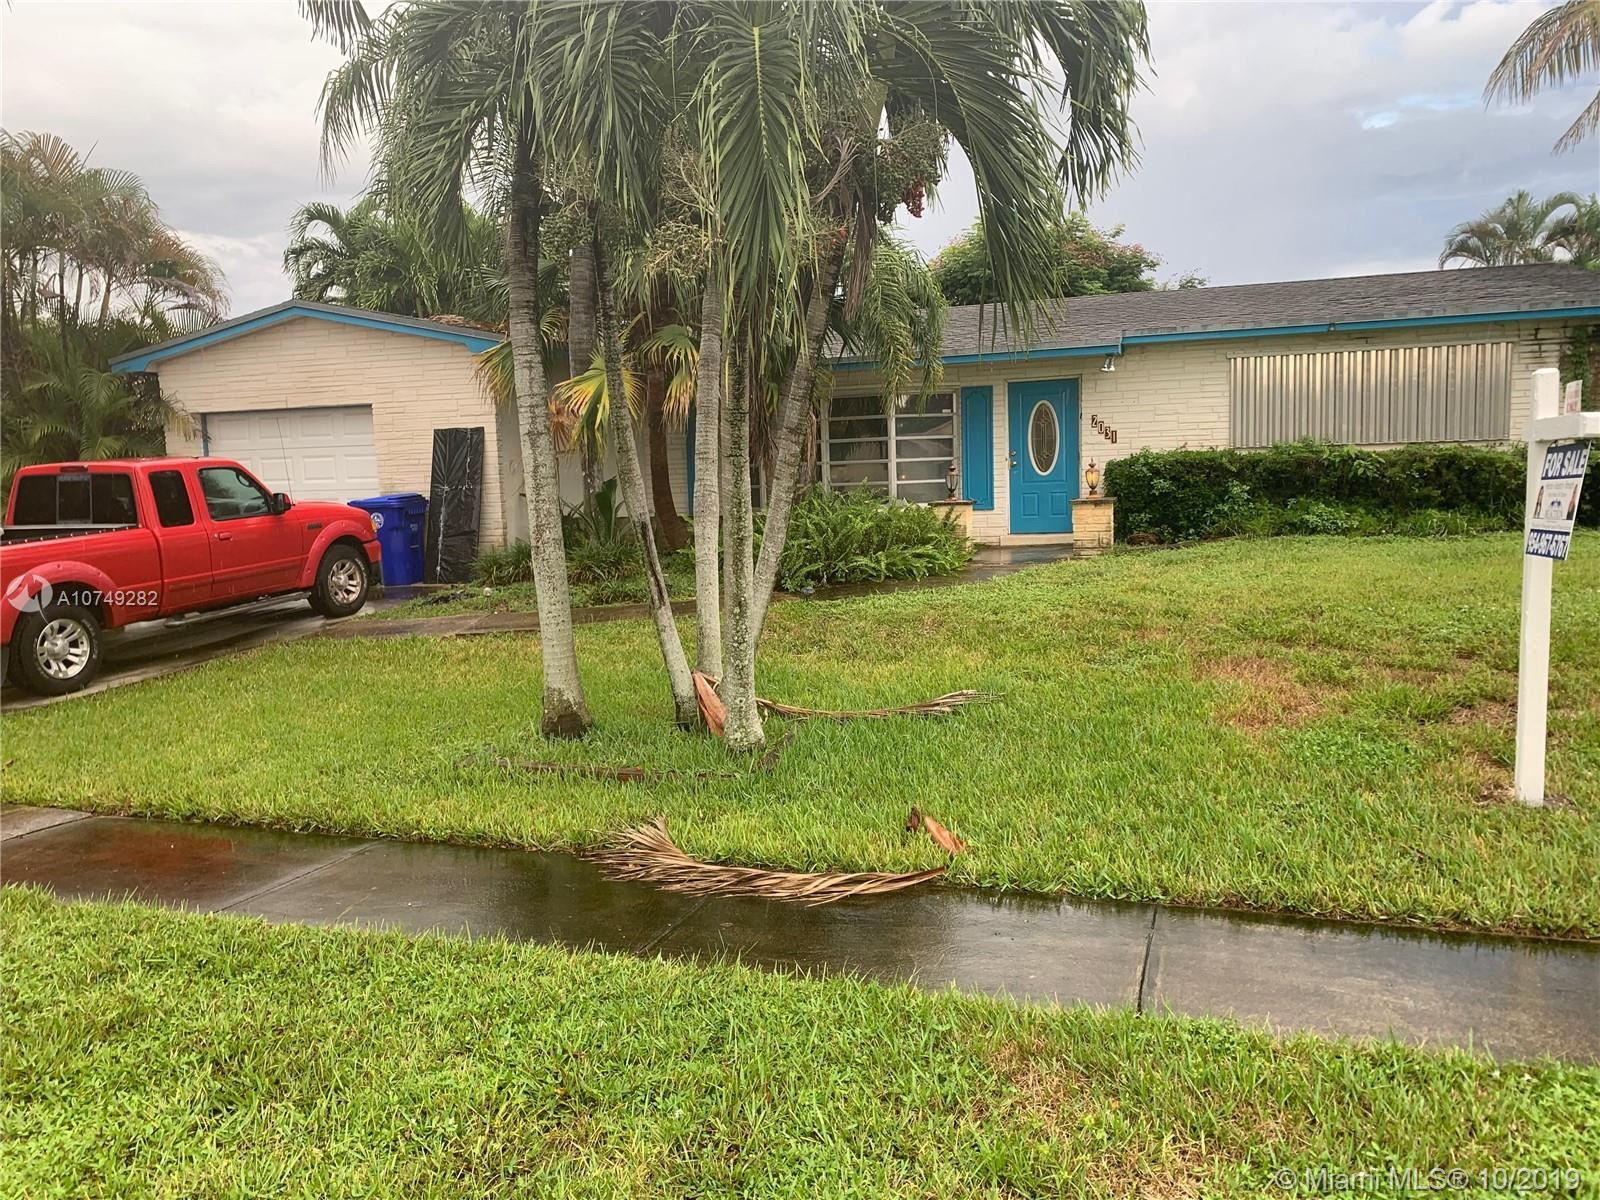 2031 NW 86th Ter, Pembroke Pines, FL 33024 - #: A10749282